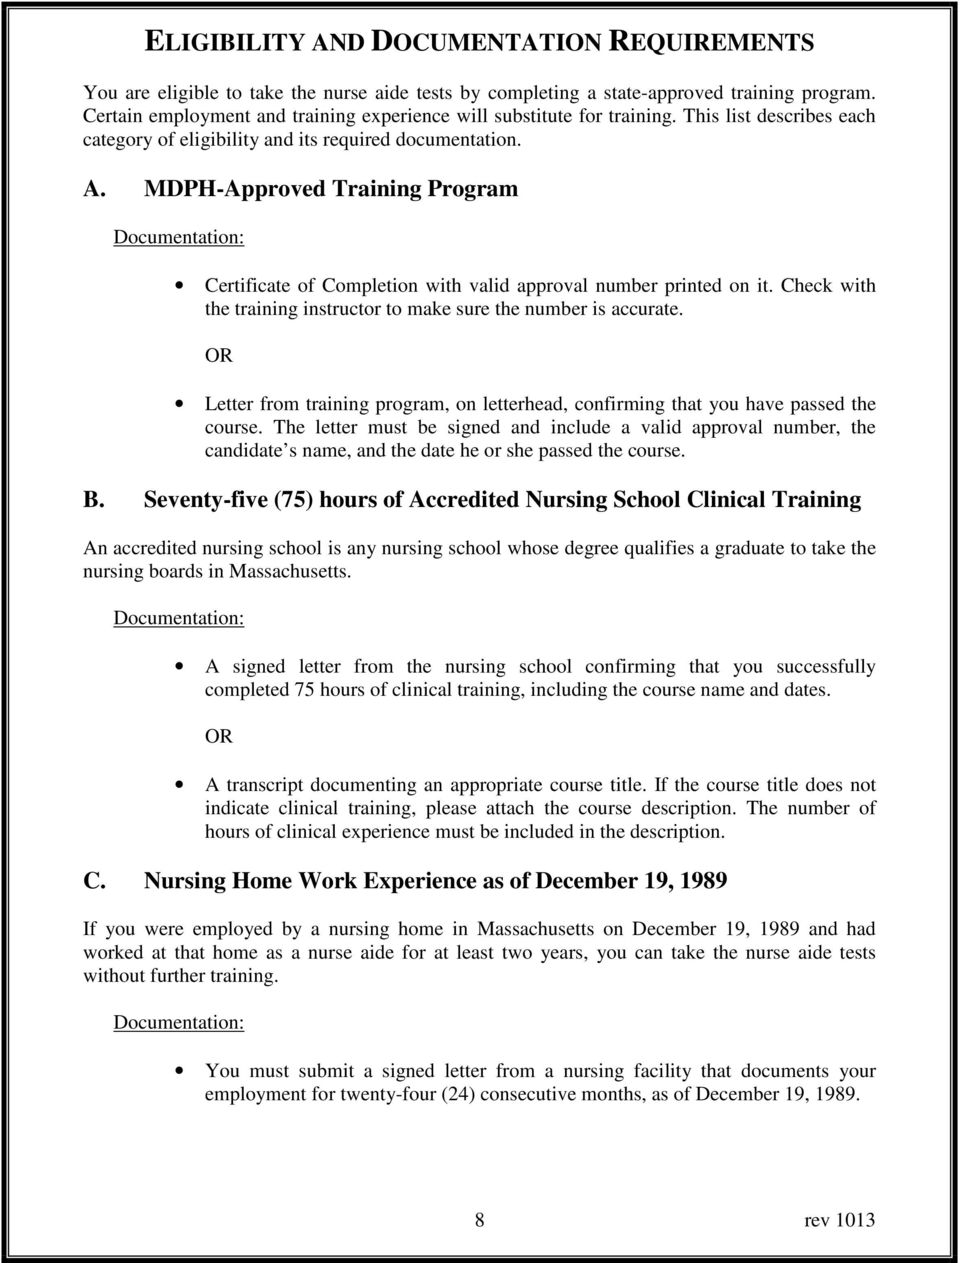 MDPH-Approved Training Program Documentation: Certificate of Completion with valid approval number printed on it. Check with the training instructor to make sure the number is accurate.